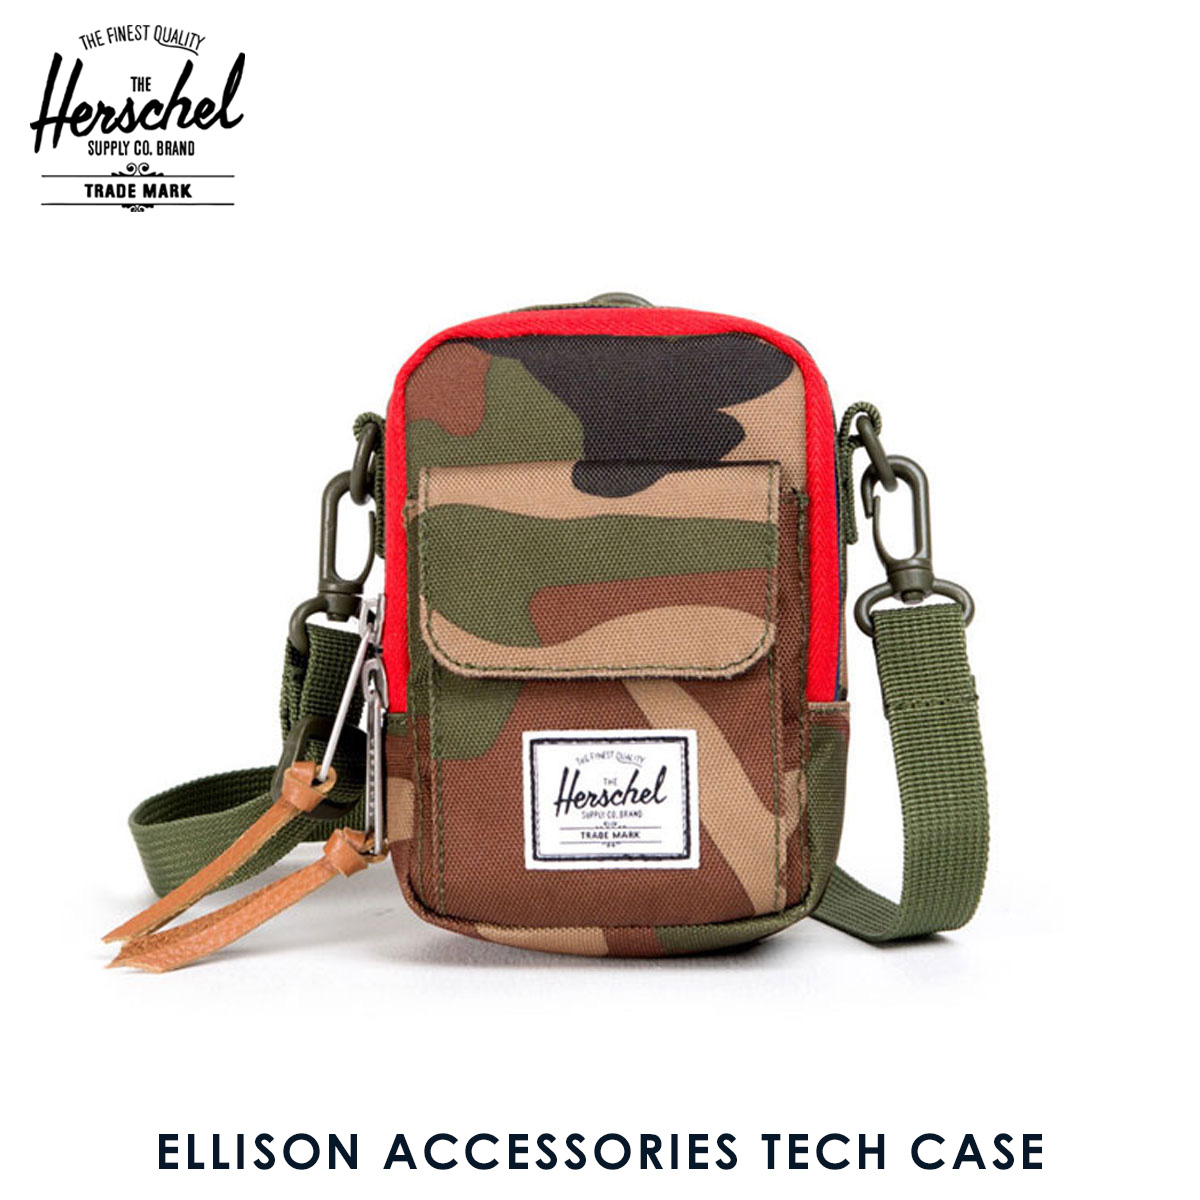 07c8a40c393 Hershel supply Herschel Supply regular store case Ellison Accessories Tech  Case 10243-00032-OS Woodland Camo D15S25